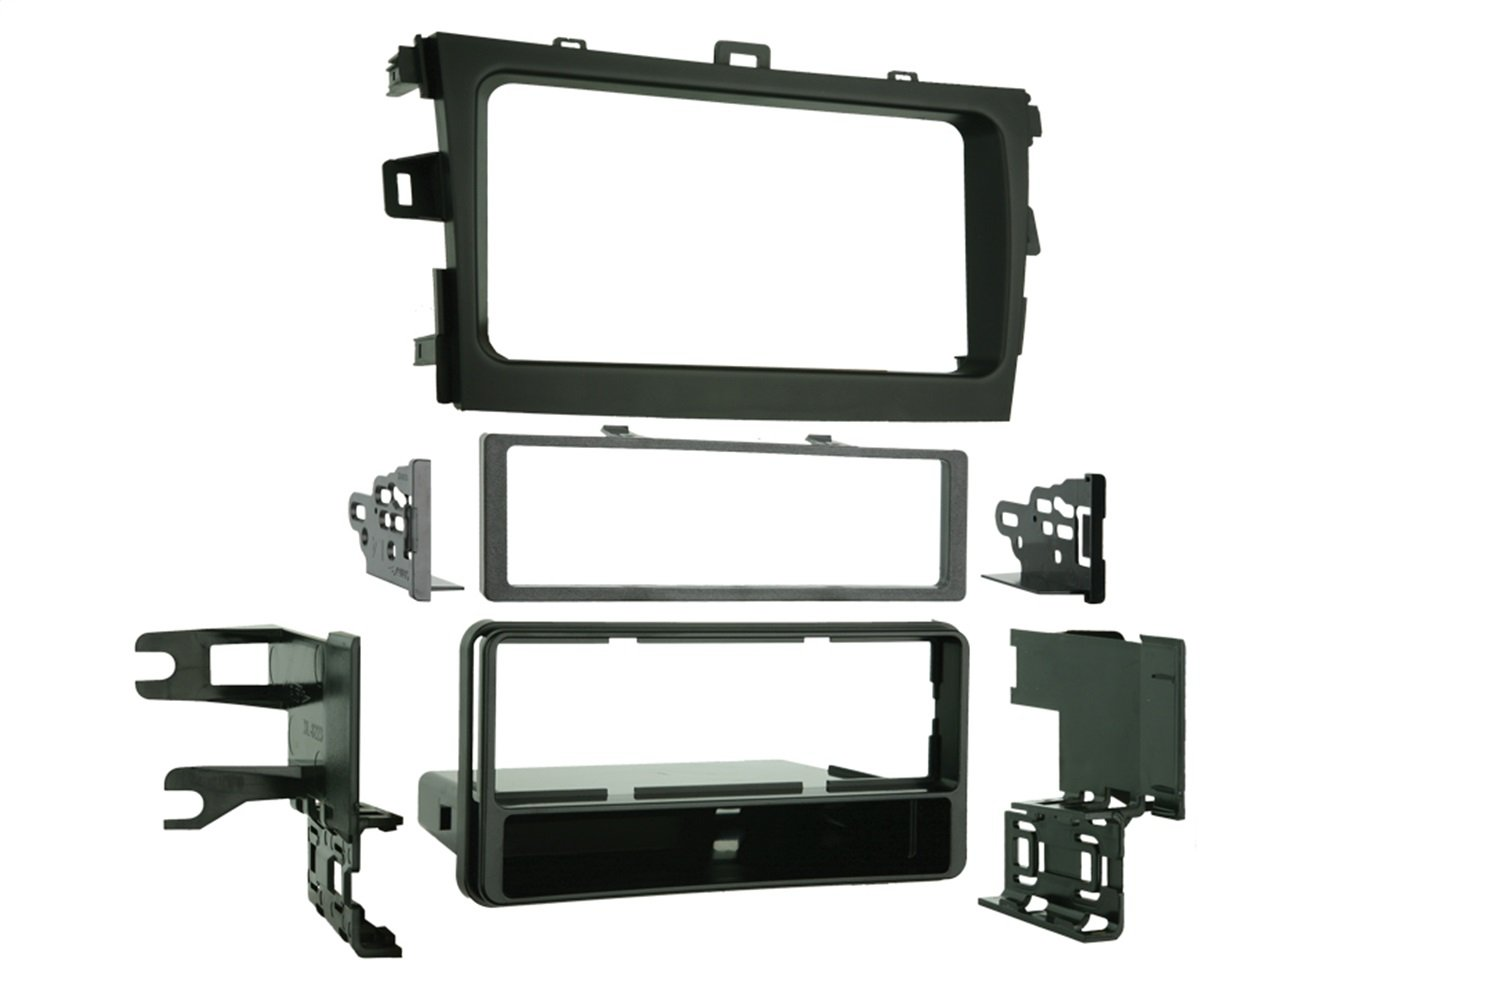 Metra 99-8223 Single DIN Installation Dash Kit for 2009 Toyota Corolla (Black)